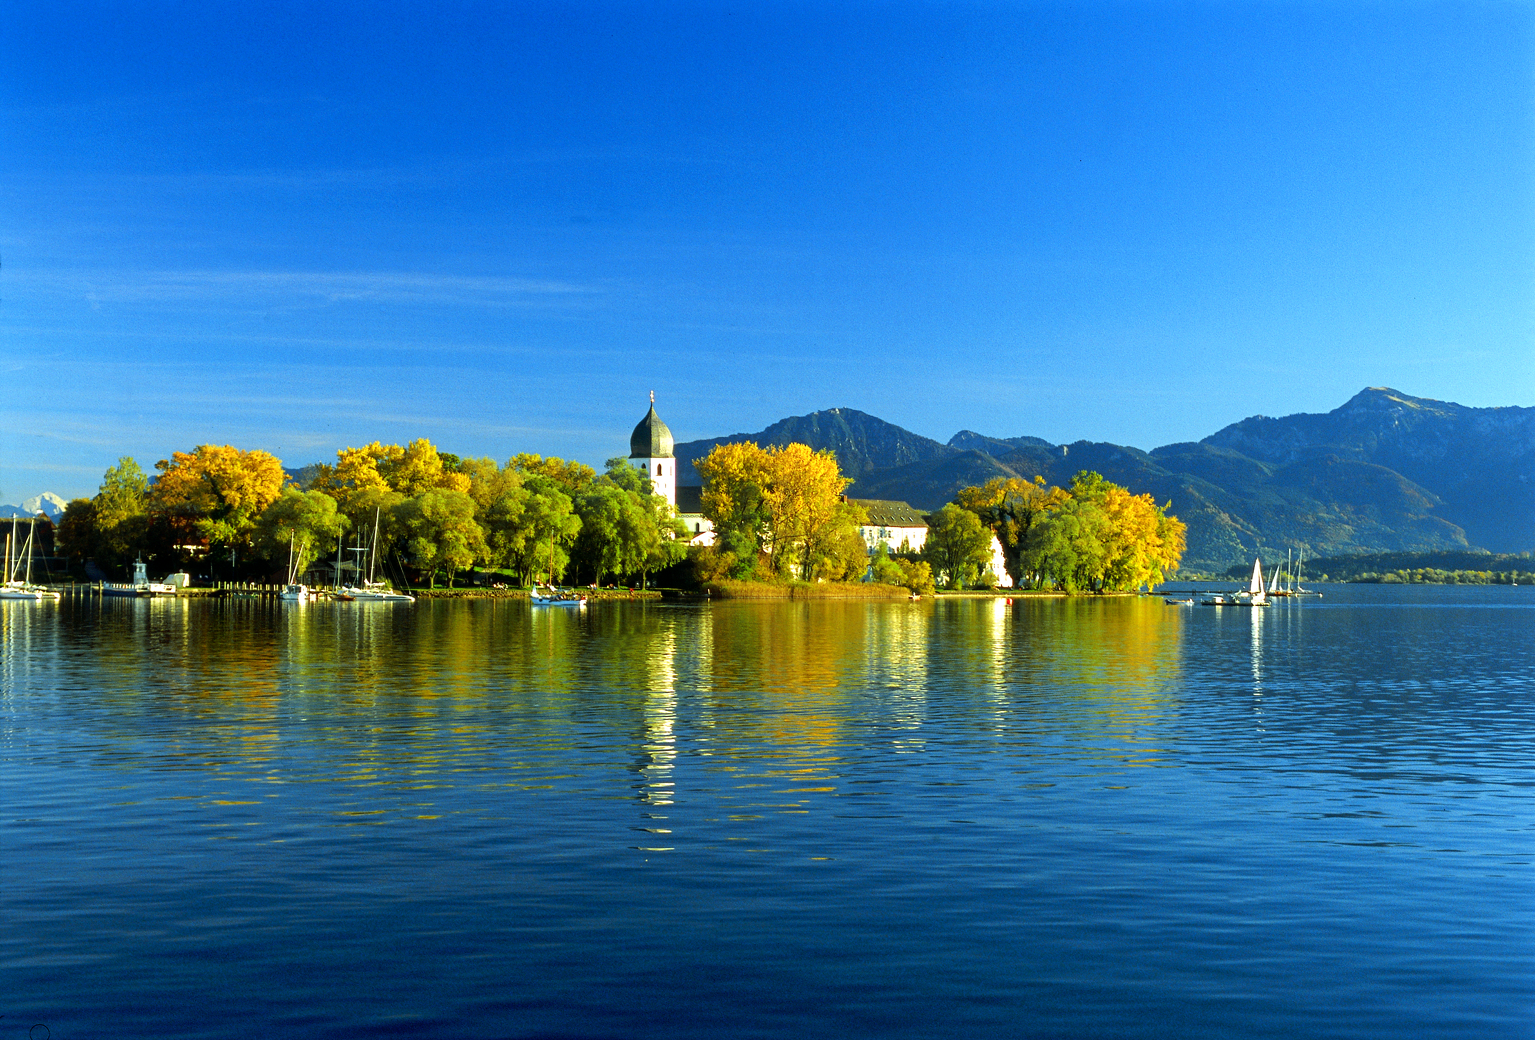 Lake Chiemsee, Germany